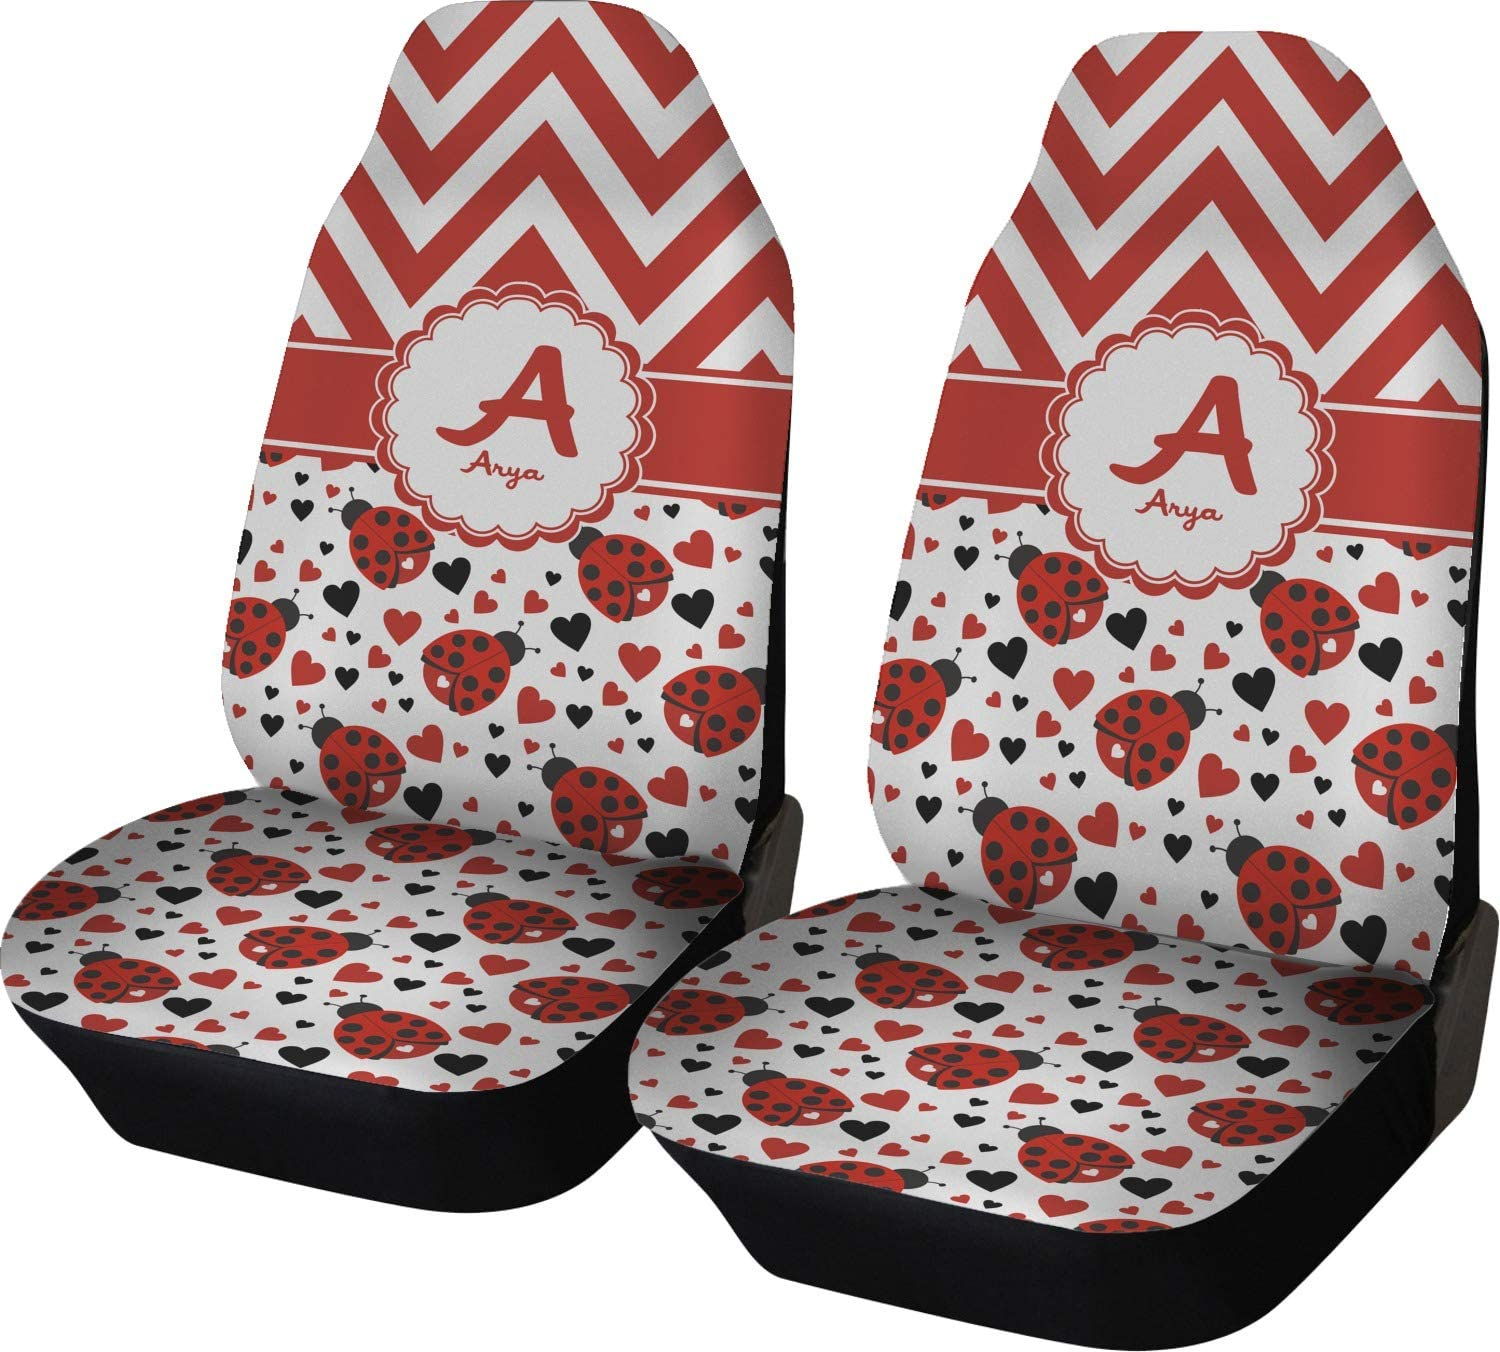 INTERESTPRINT Ladybug Car Seat Covers Polyester Fabric One Side Printing Protector Dust Proof Set of 2